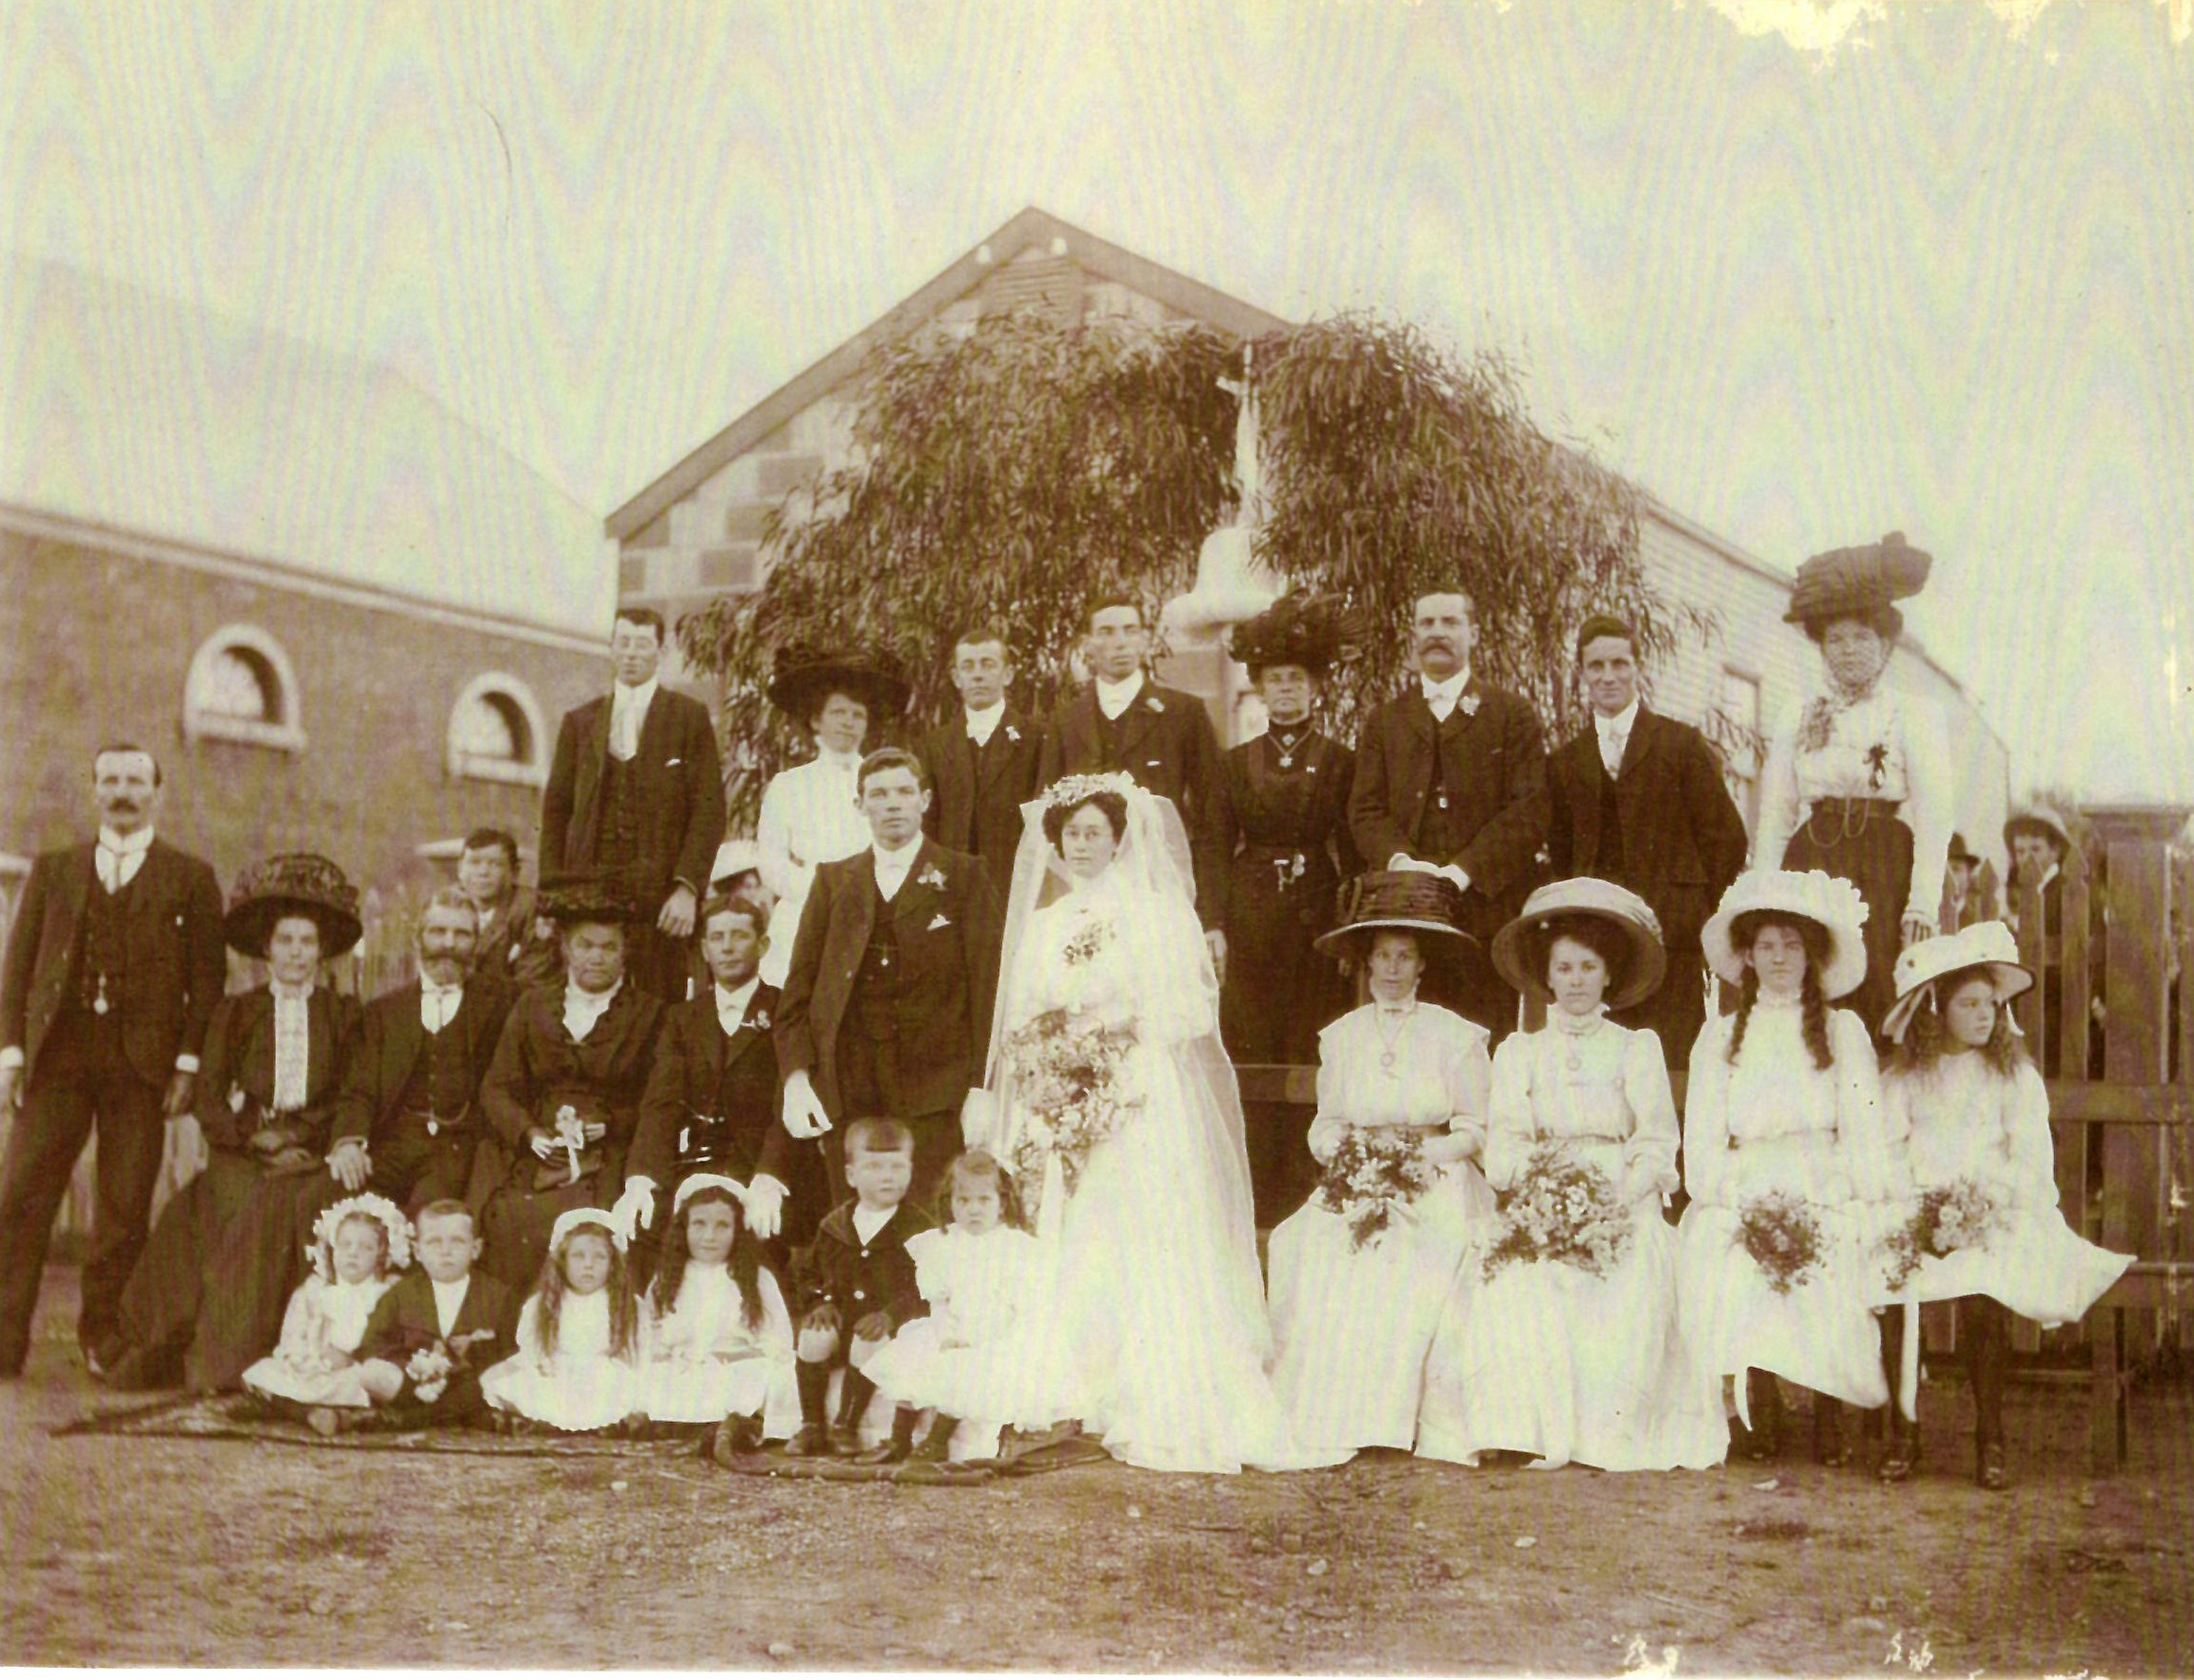 Finding the Lihou Family